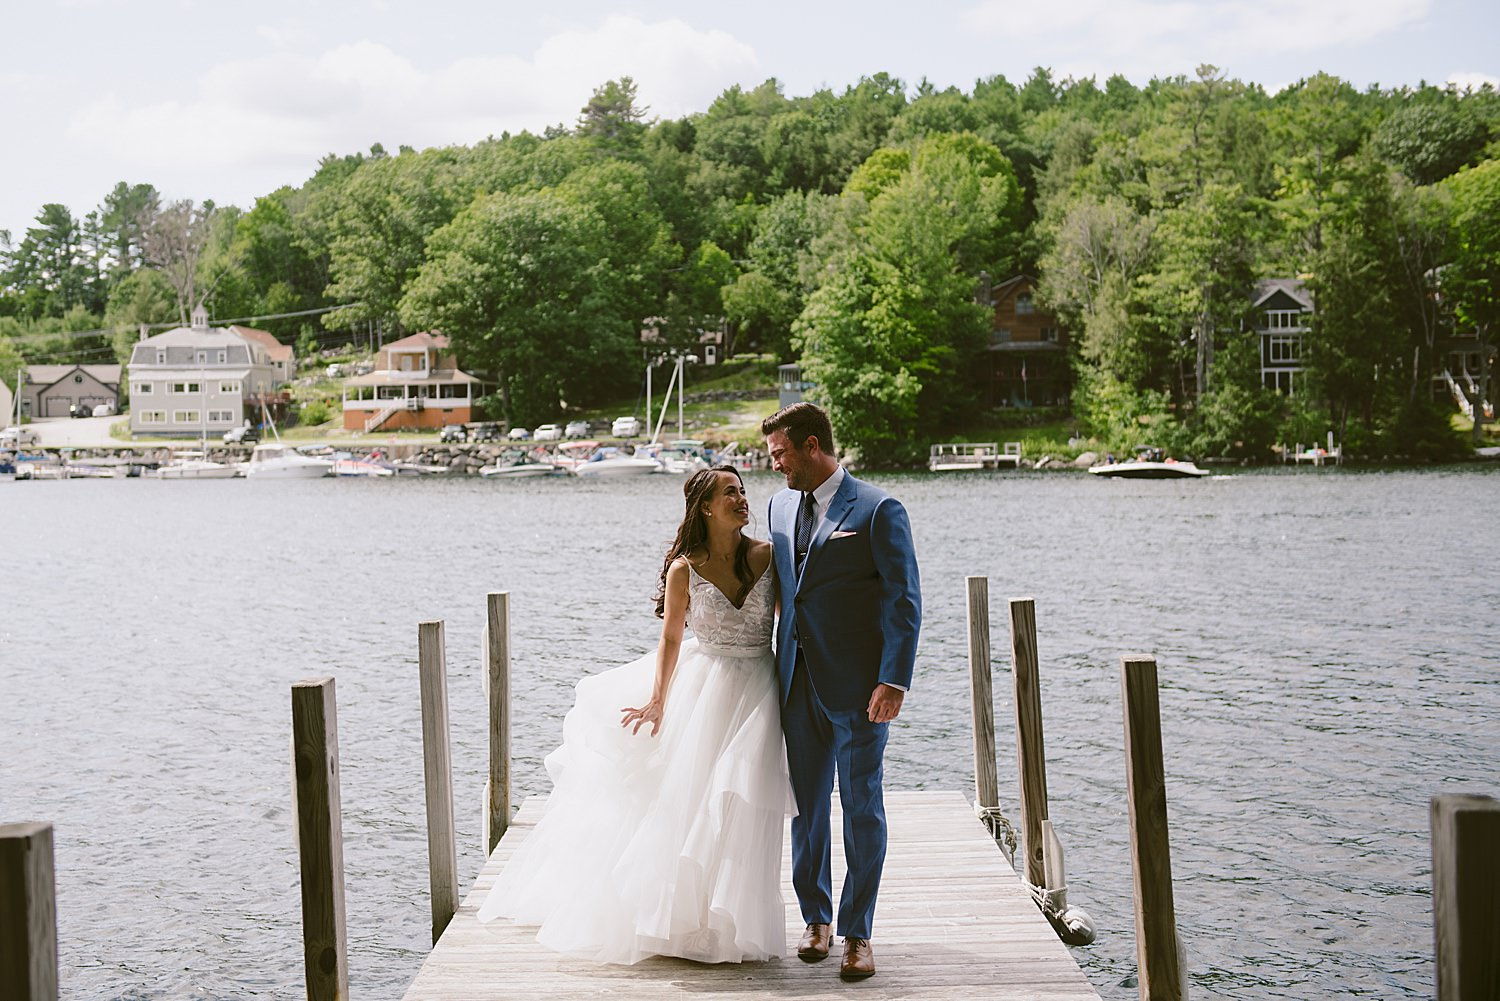 Bride and groom walking along a pier